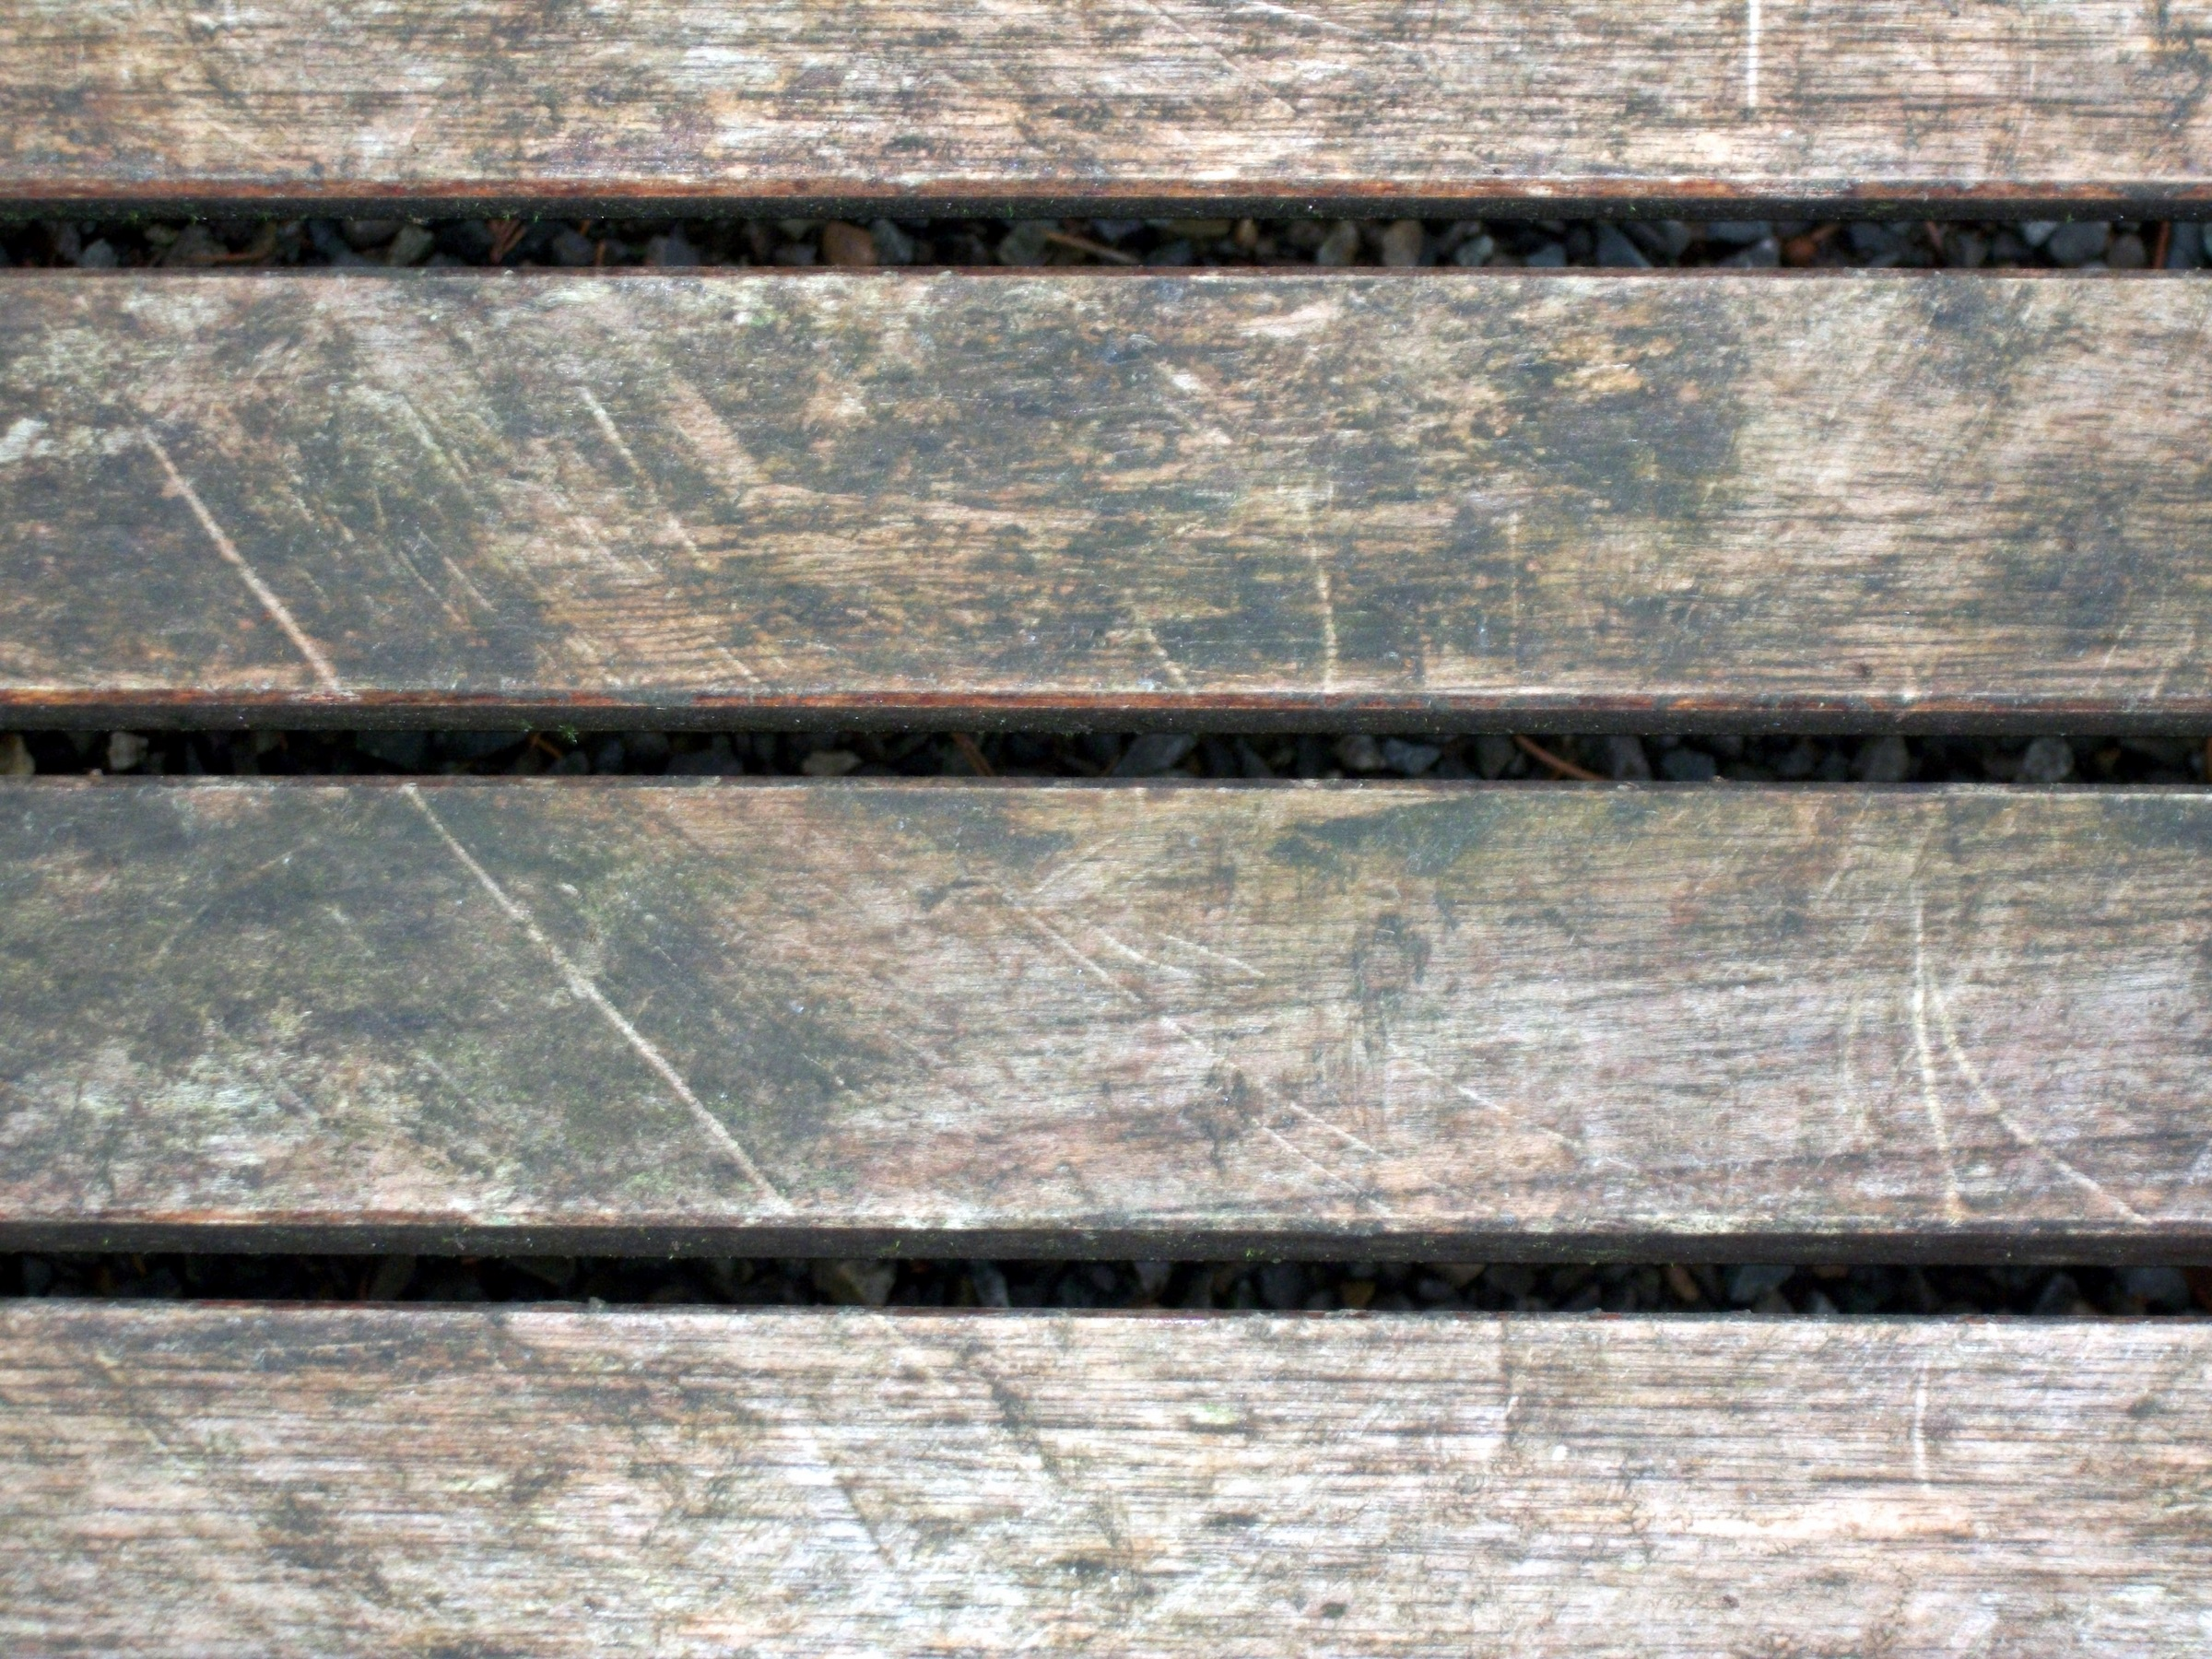 Weathered wood slats, Natural, Old, Slats, Texture, HQ Photo